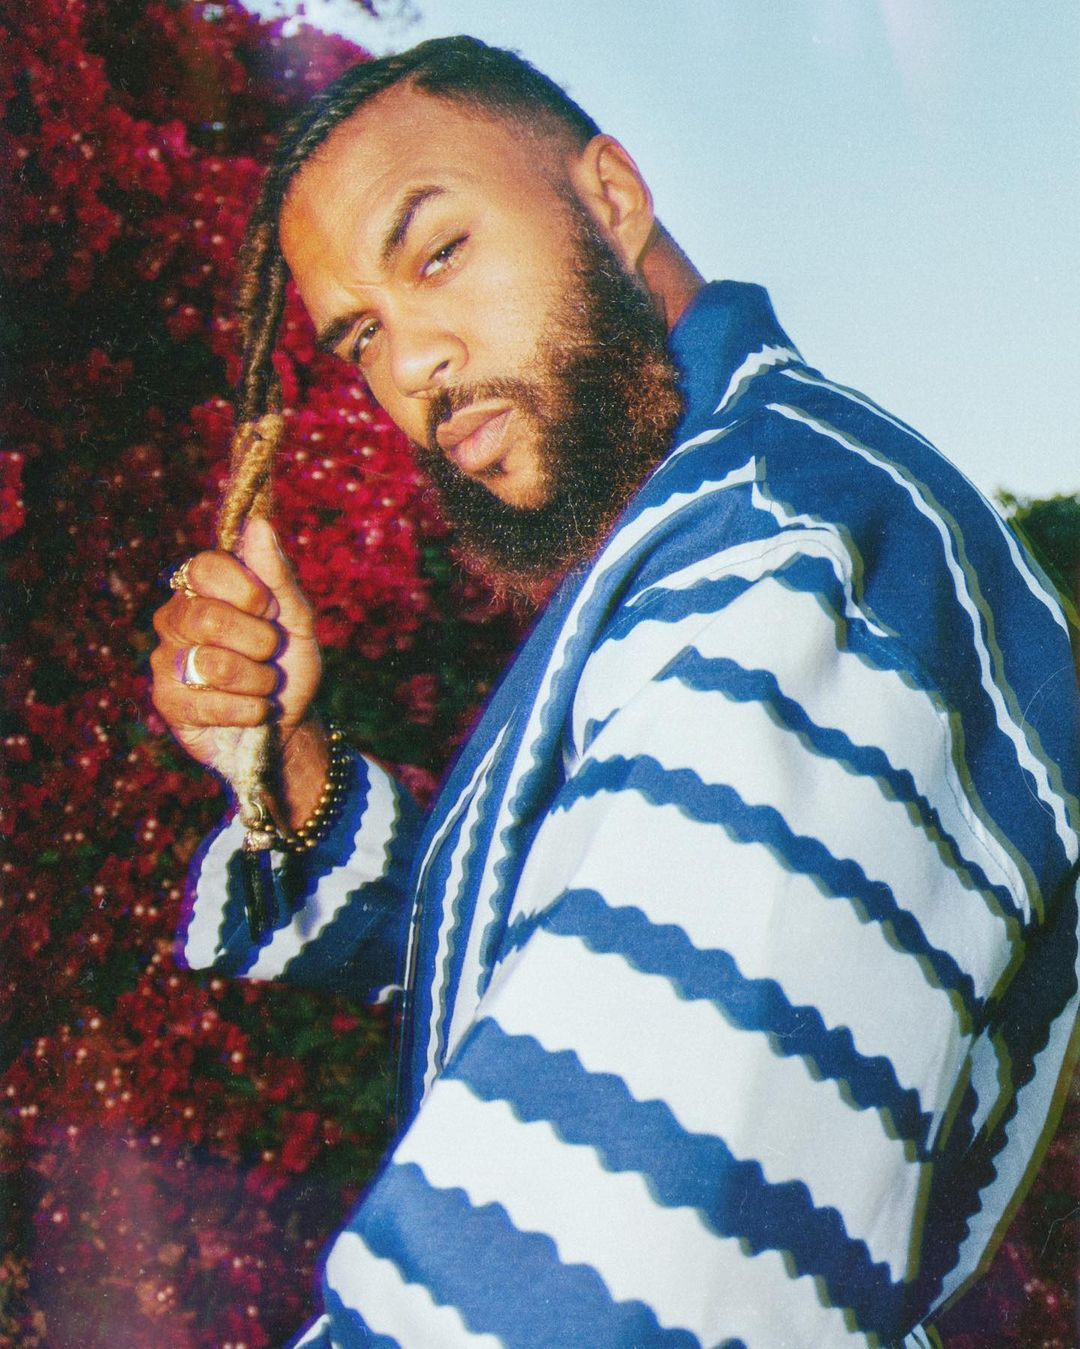 You are truly self-motivated - Jidenna pens down sweet Mother's Day message to his mom